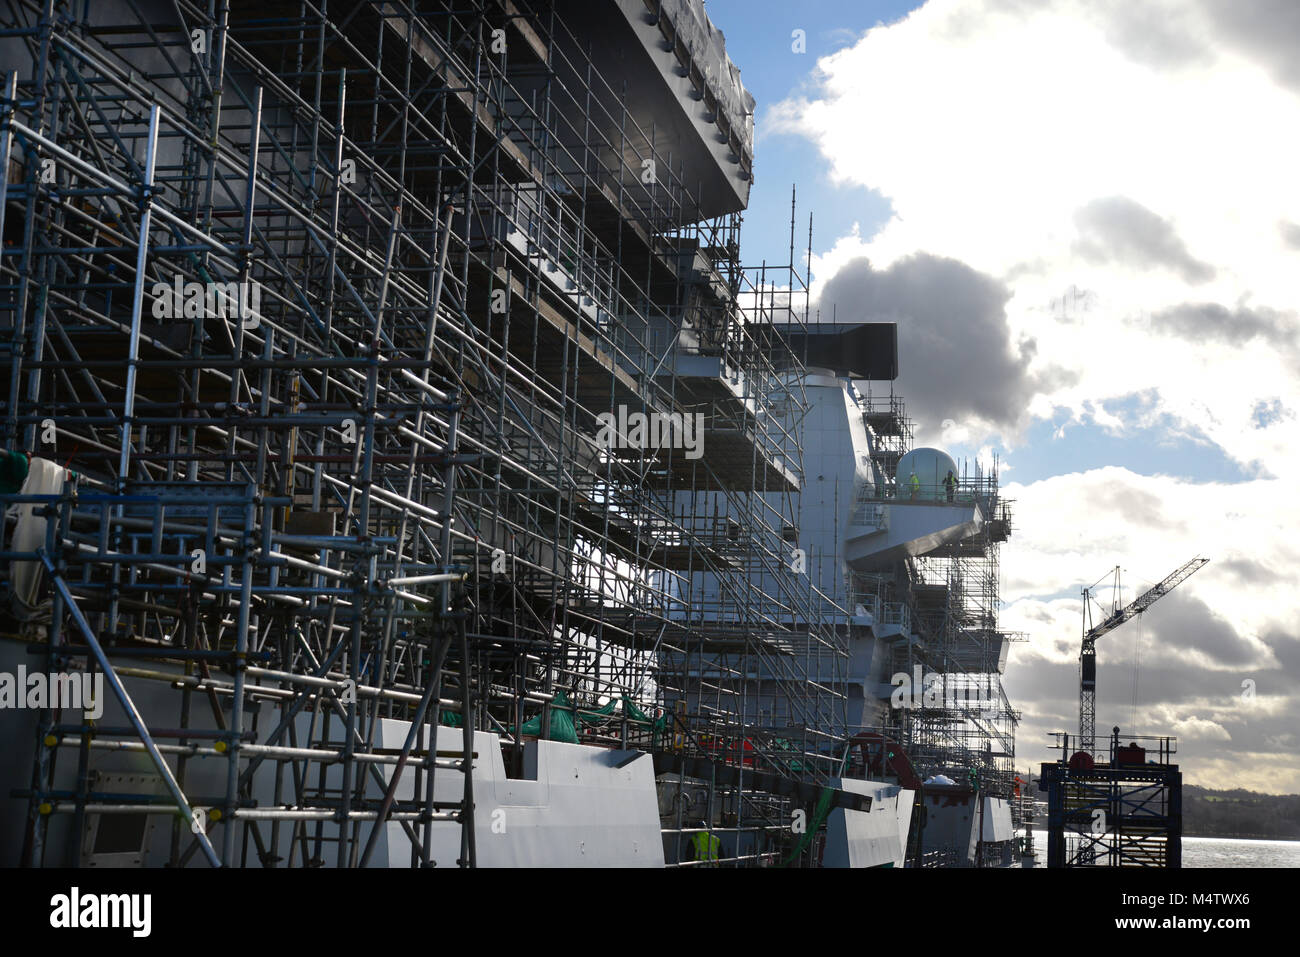 HMS Queen Elizabeth during building at Rosyth - Stock Image